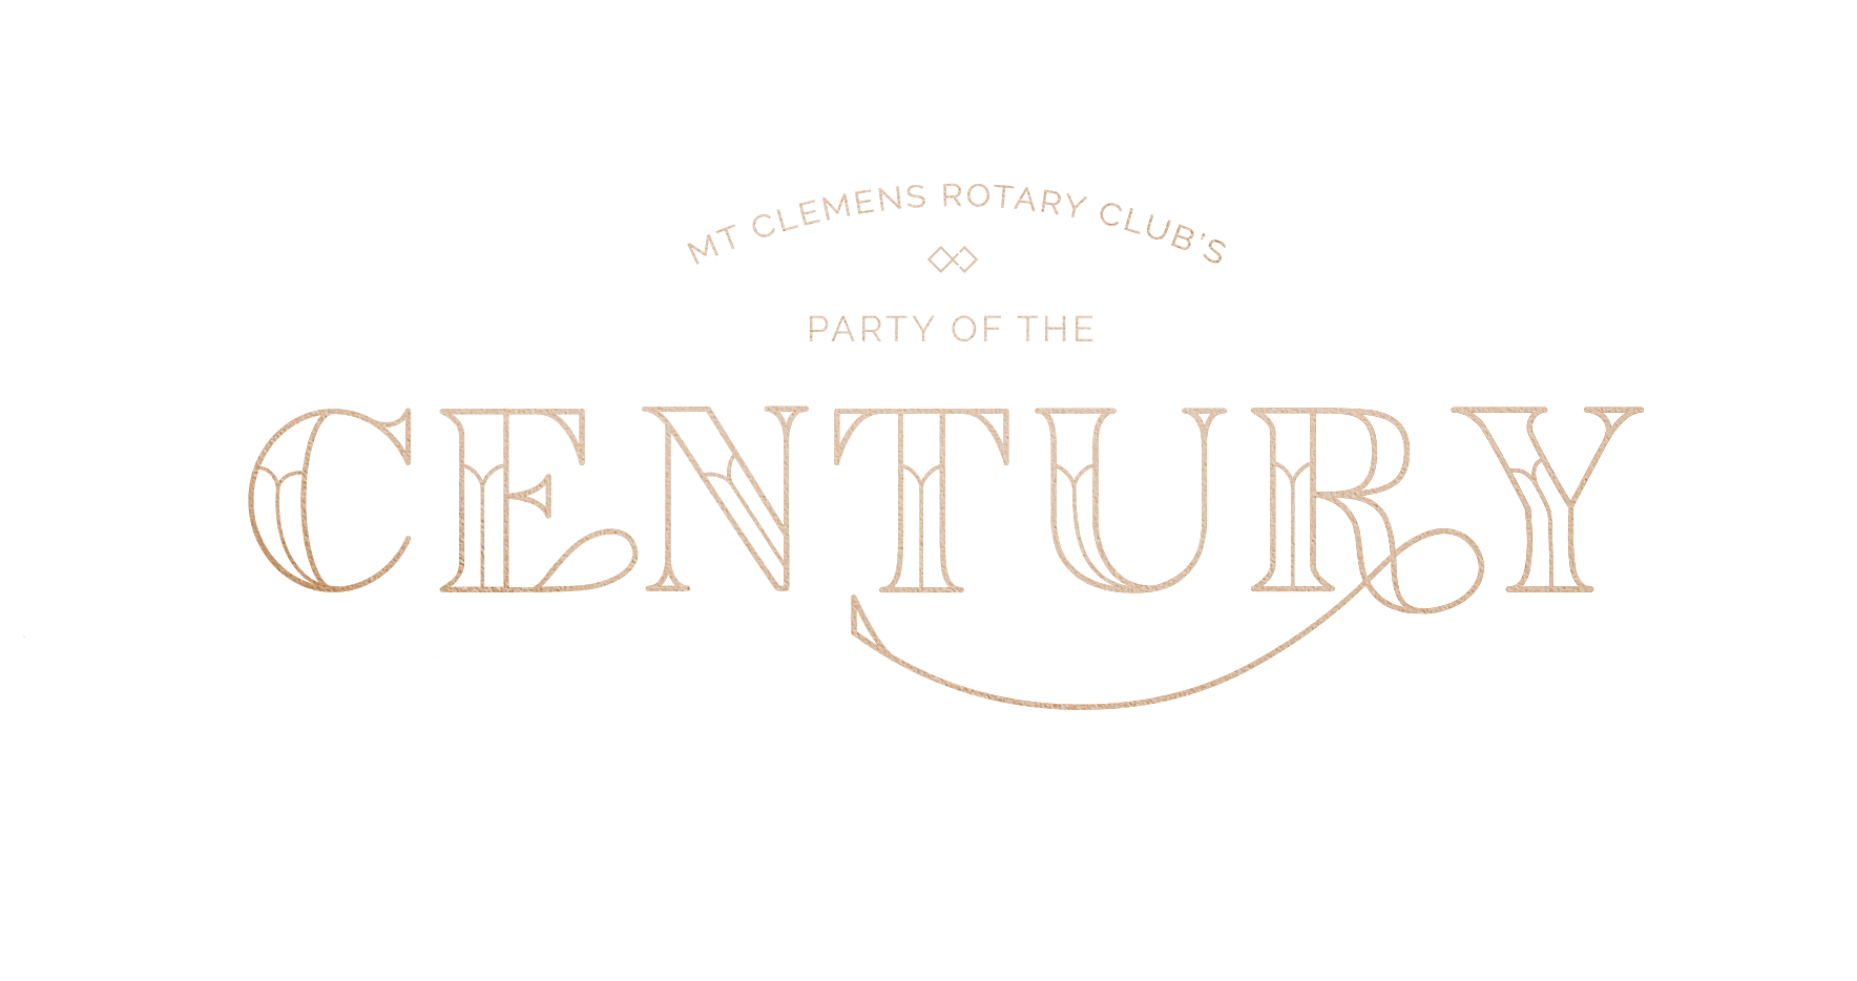 Mt Clemens Rotary Club's Party of the Century